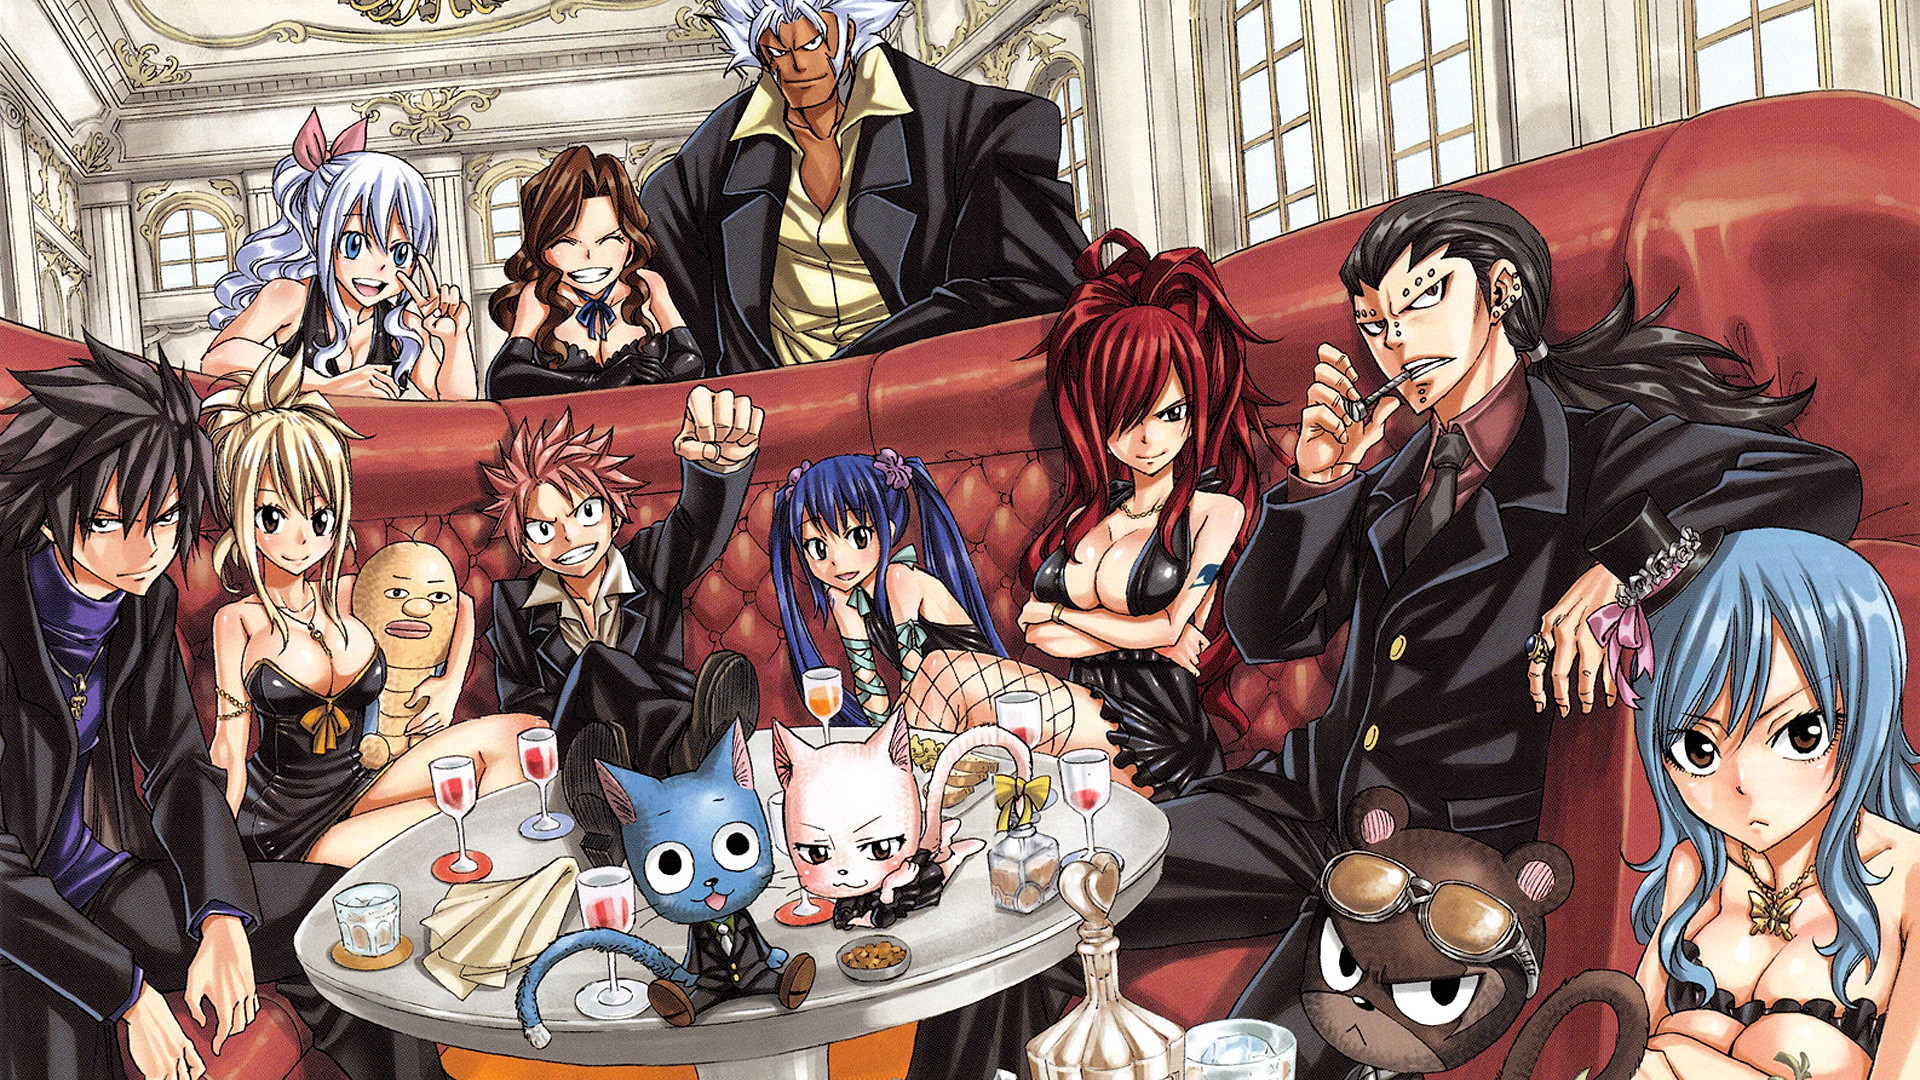 Juvia Fairy Tail Hd Wallpaper 74 Images